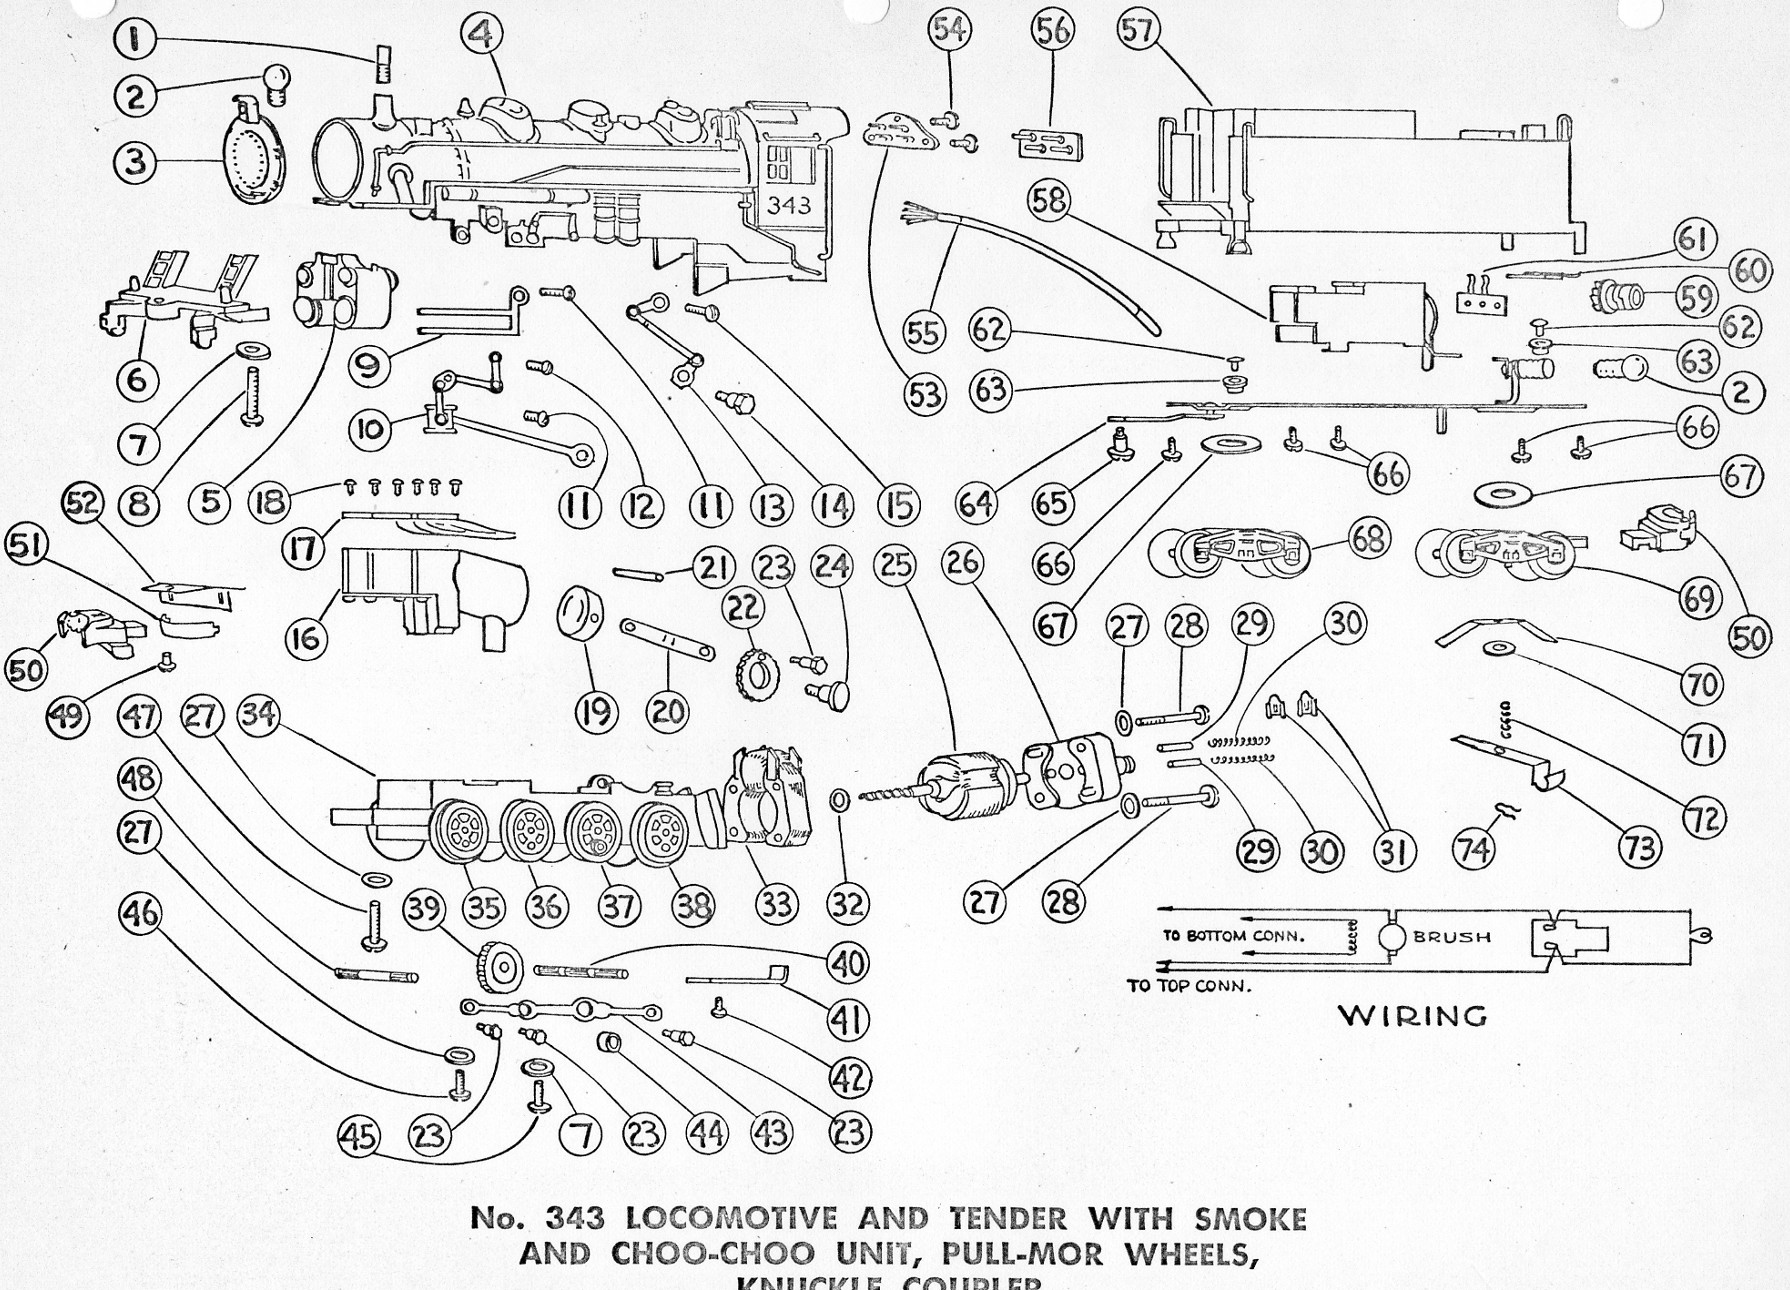 American Flyer Locomotive 343 Parts List Amp Diagram